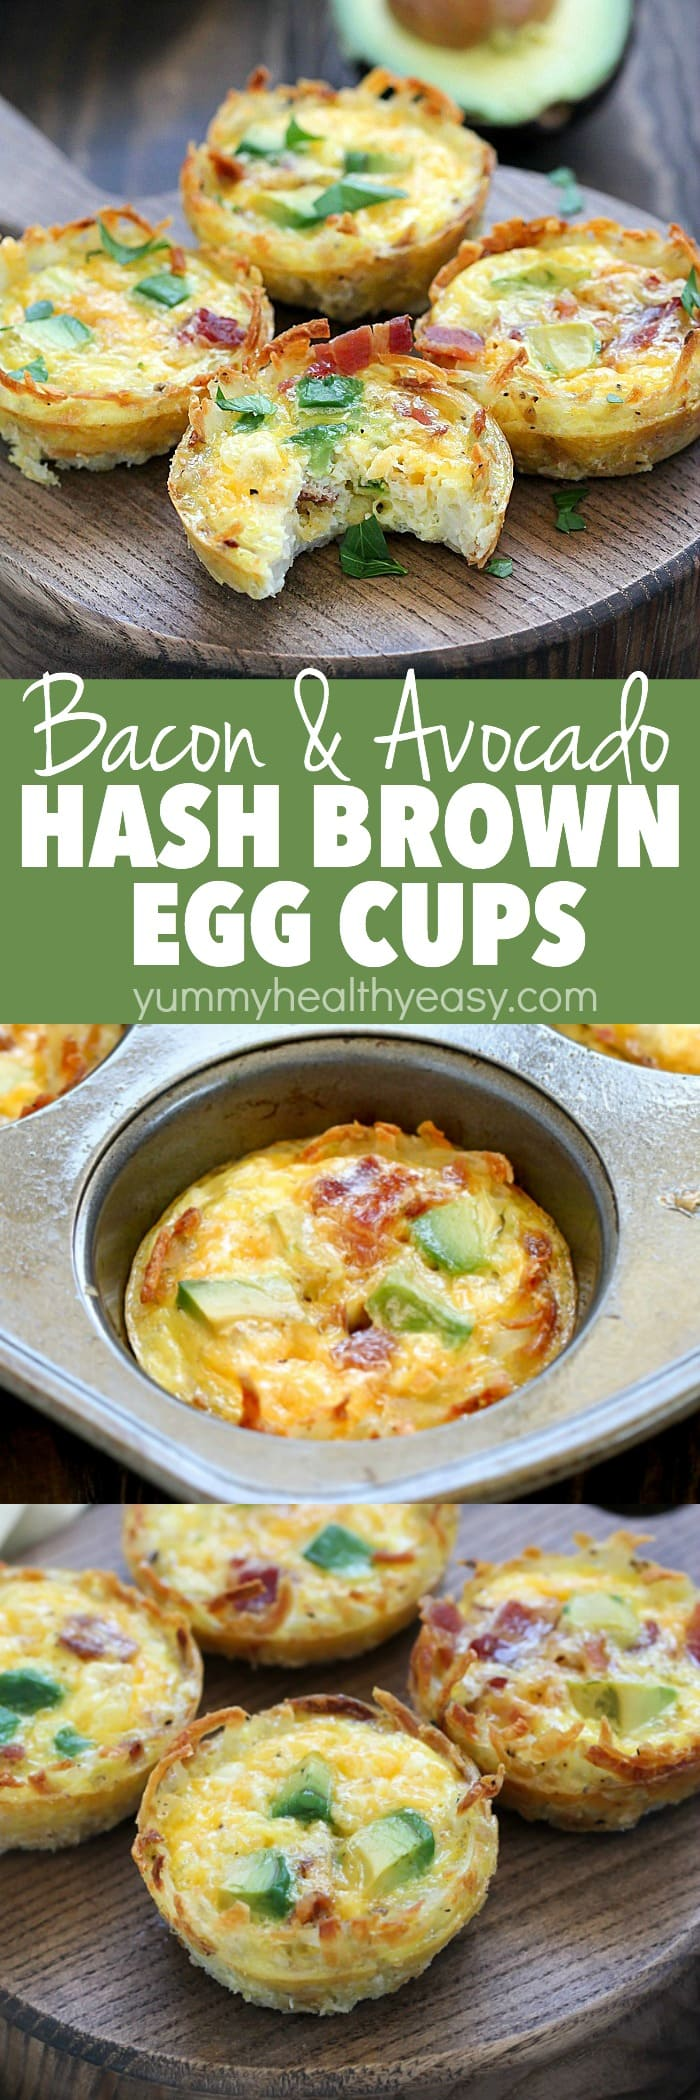 Bacon & Avocado Hash Brown Egg Cups are the perfect make-ahead breakfast! They have a crispy crust of hash browns and are filled with bacon, egg, cheese and avocado deliciousness. They have so much flavor packed into a muffin size breakfast bite! AD via @jennikolaus